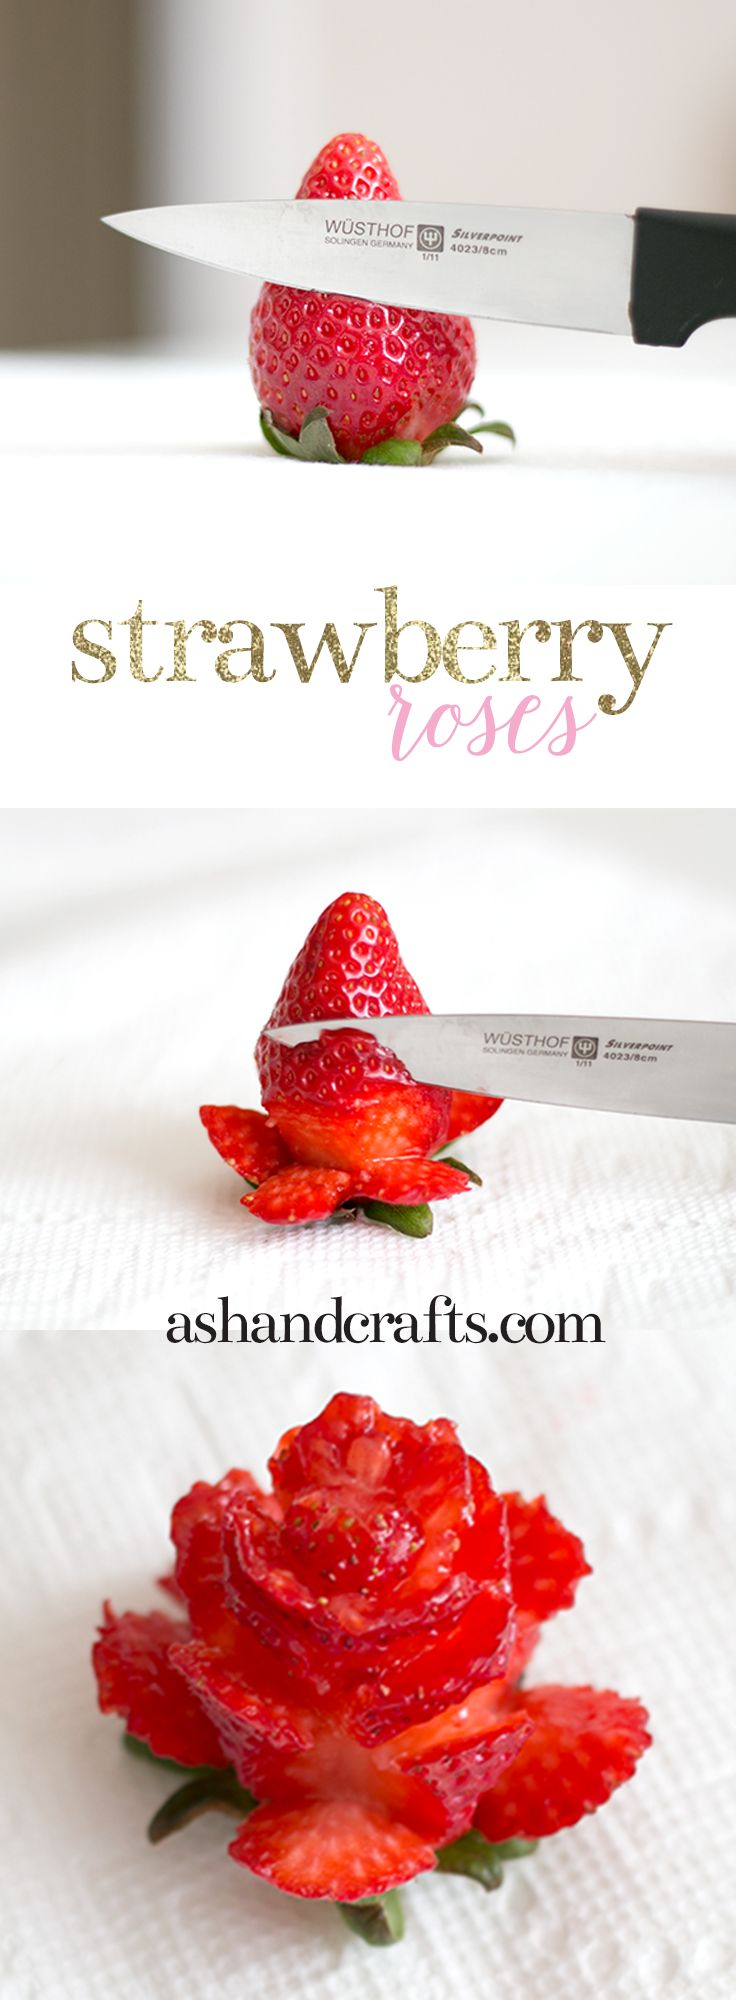 Learn how to cut strawberries into roses. See this tutorial and more and ashandcrafts.com